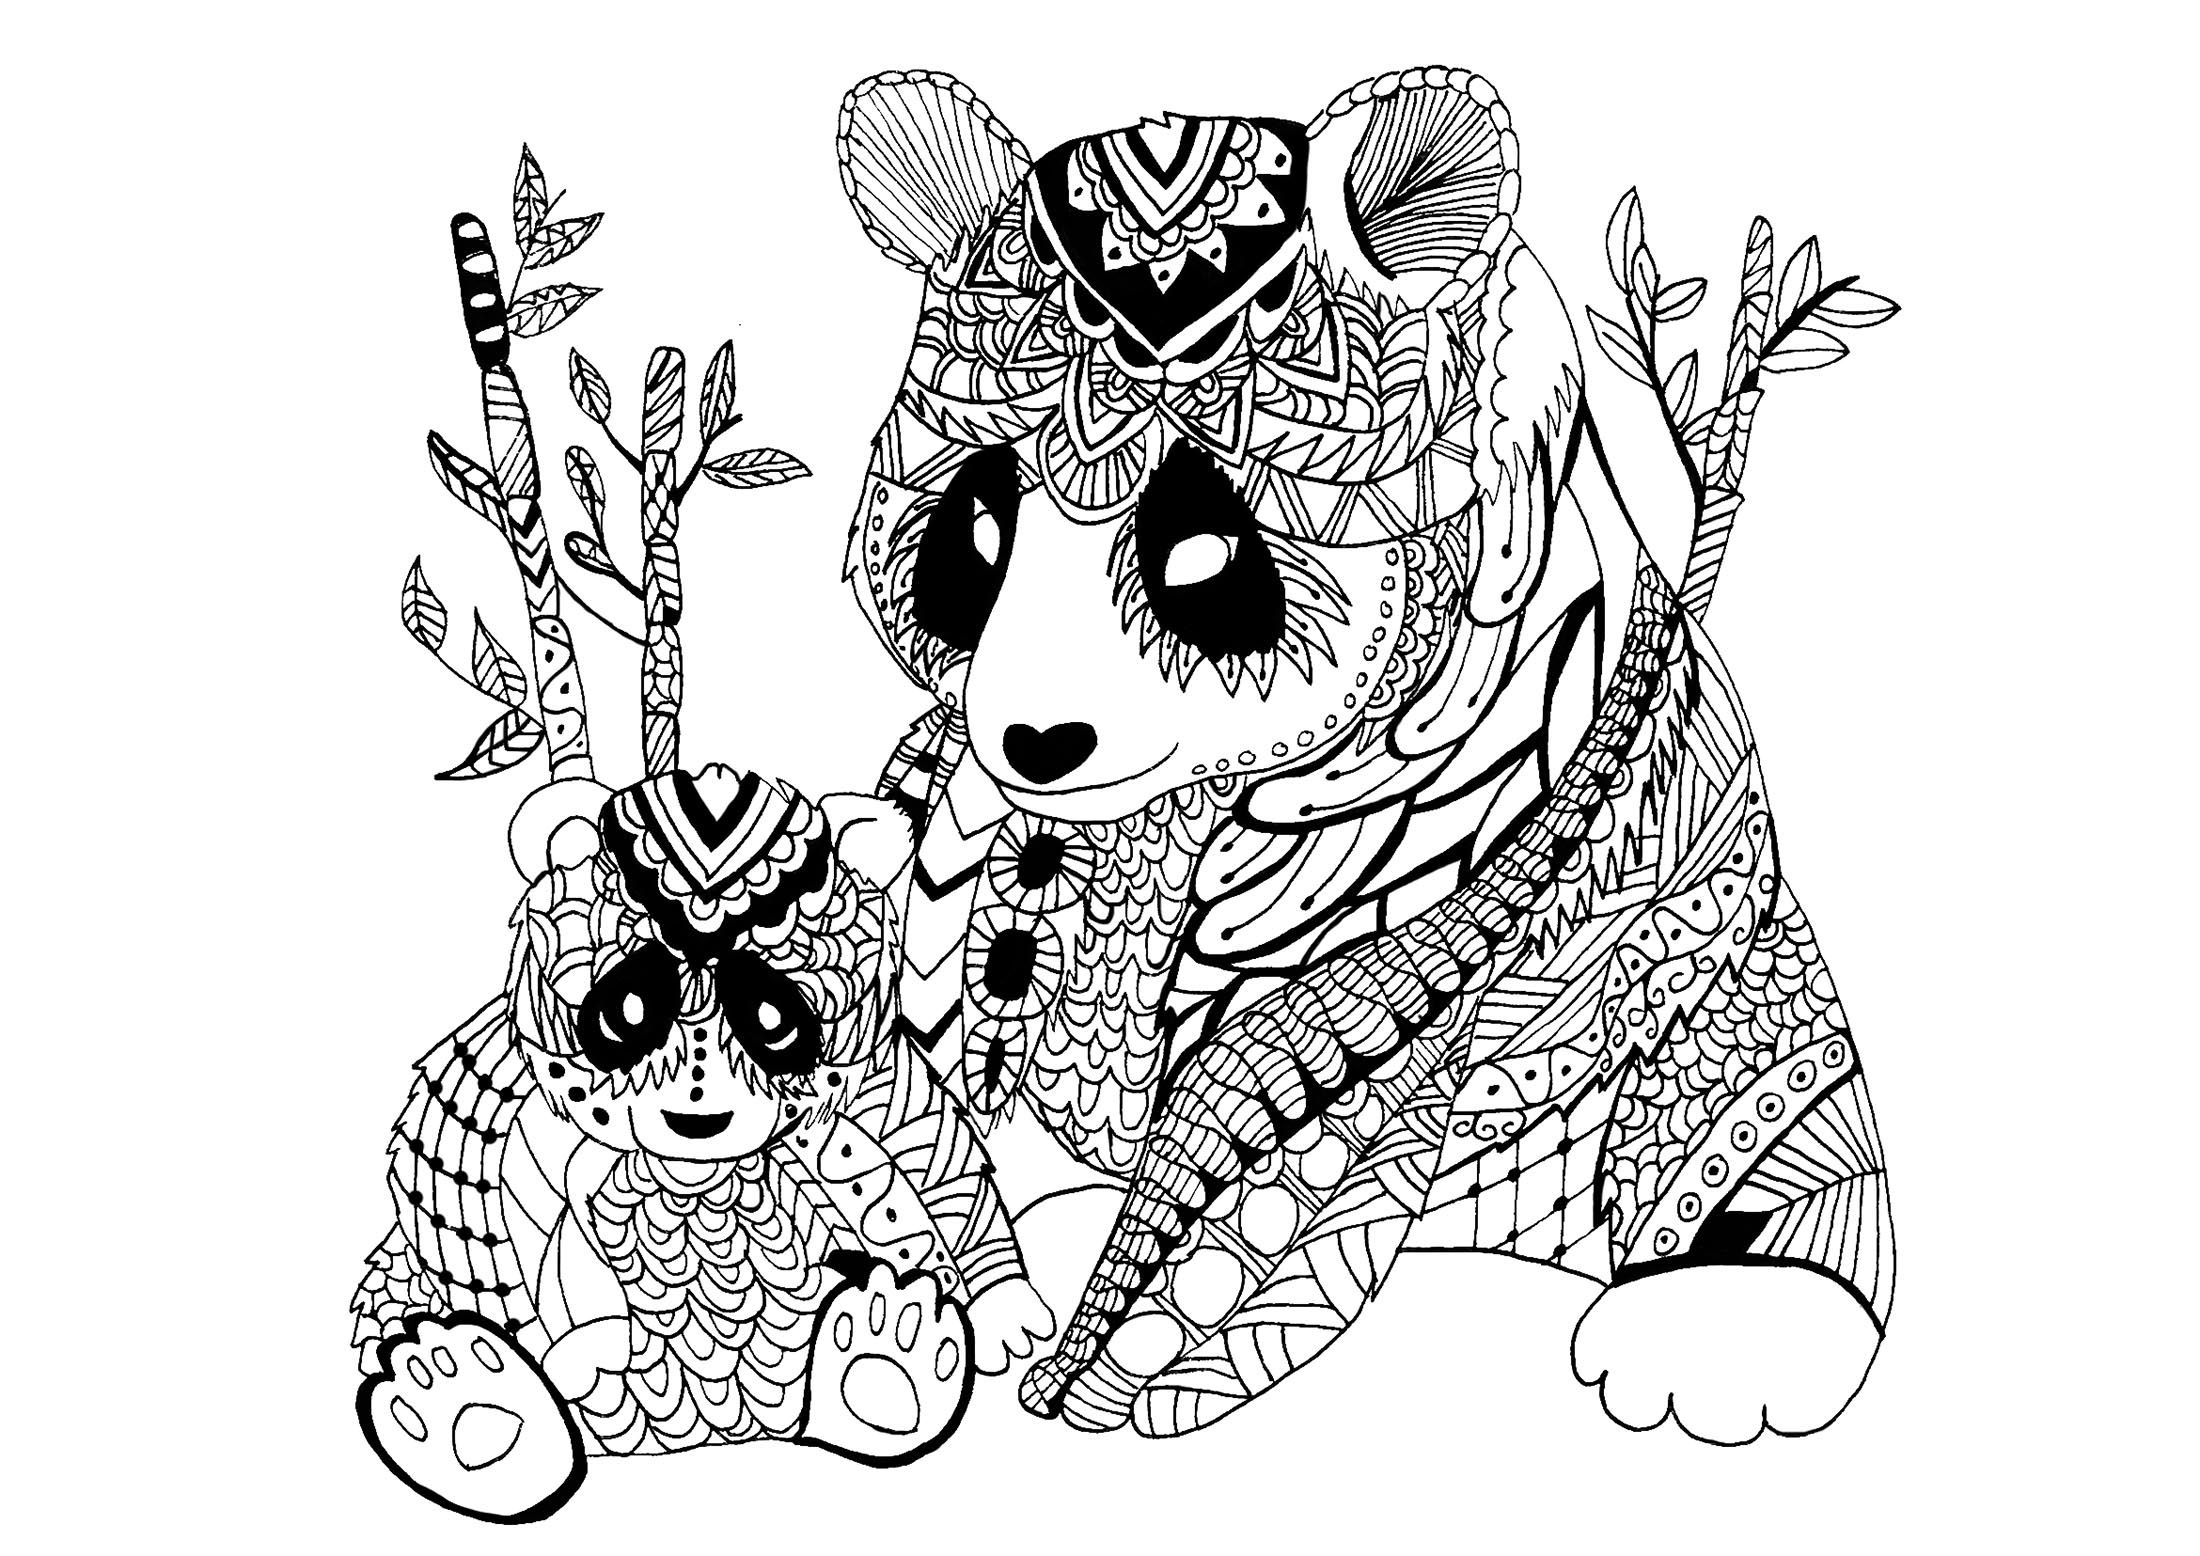 coloring panda picture pandas to download for free pandas kids coloring pages coloring picture panda